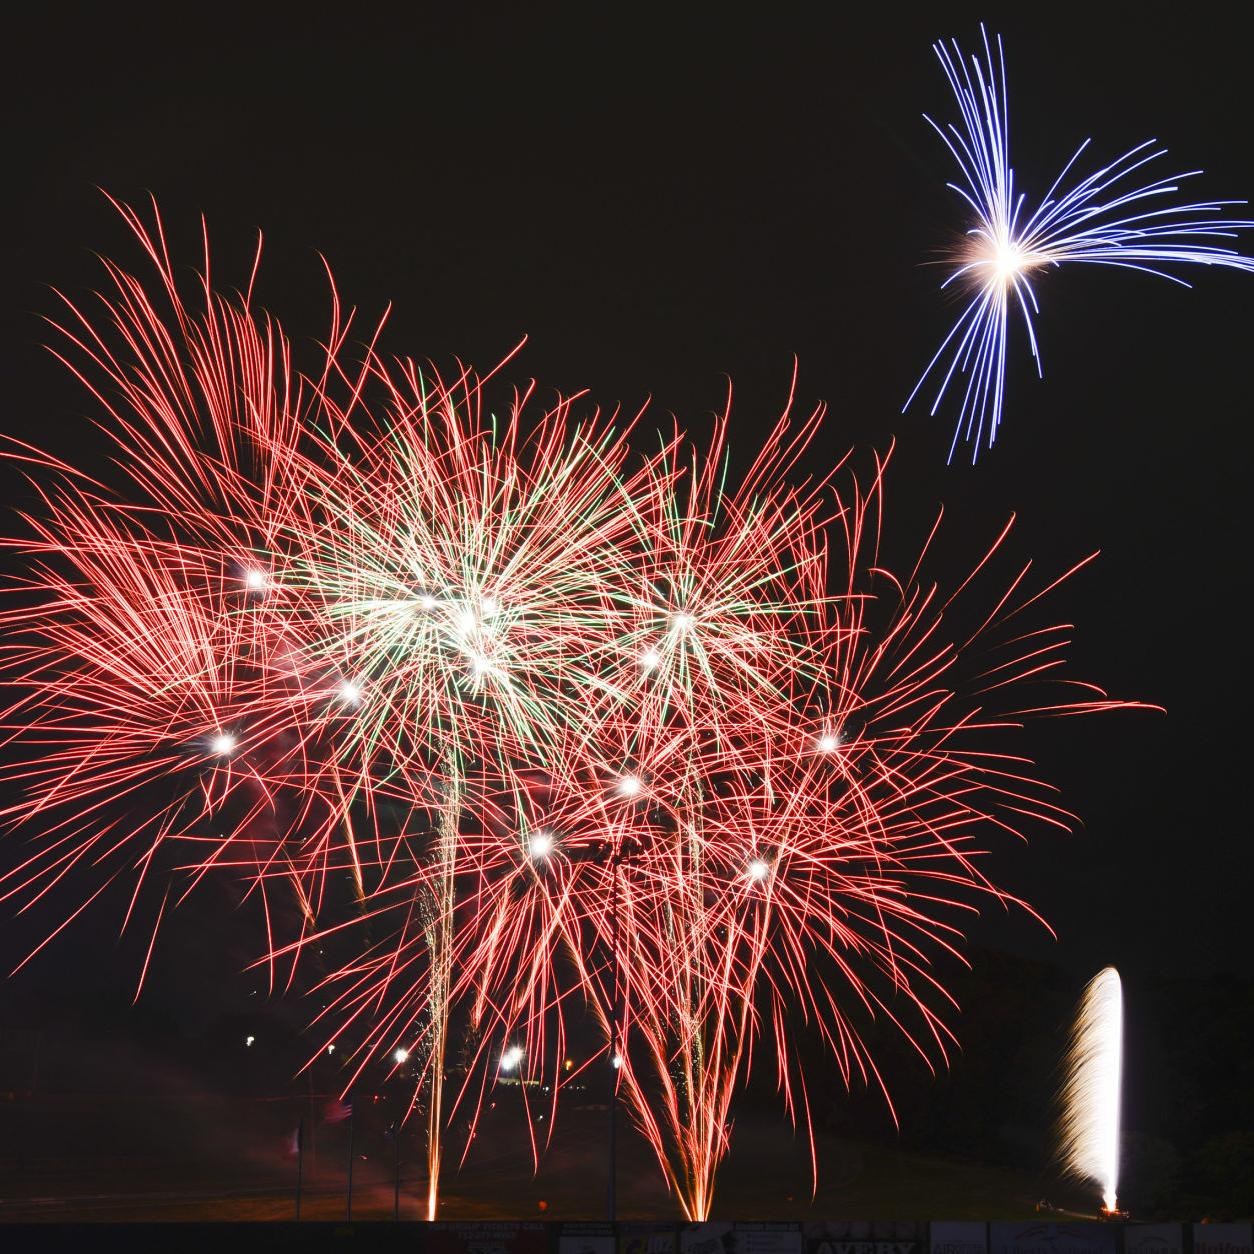 Sioux City Council legalizes fireworks for Fourth of July